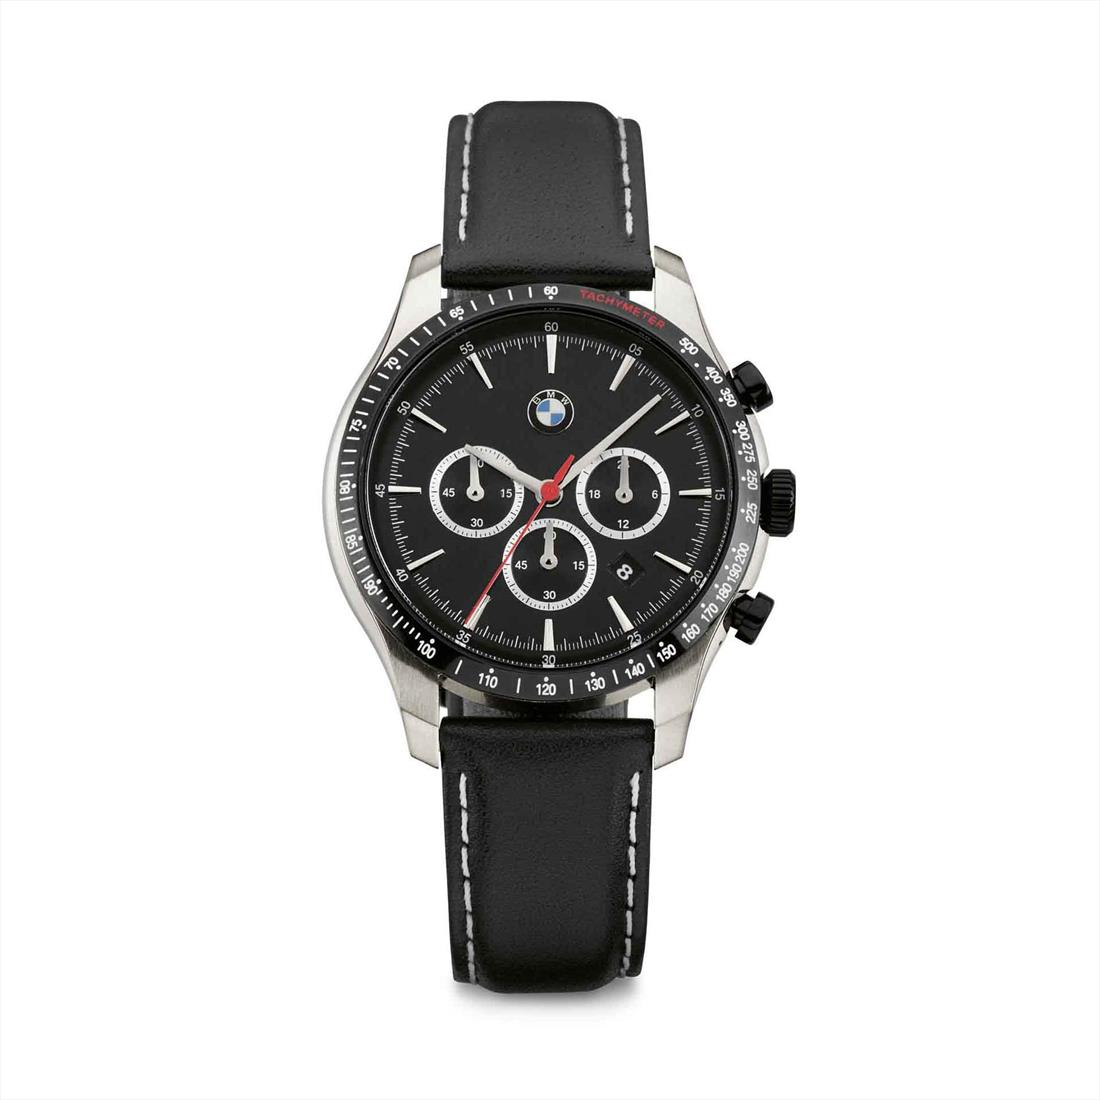 BMW CHRONOGRAPH WATCH